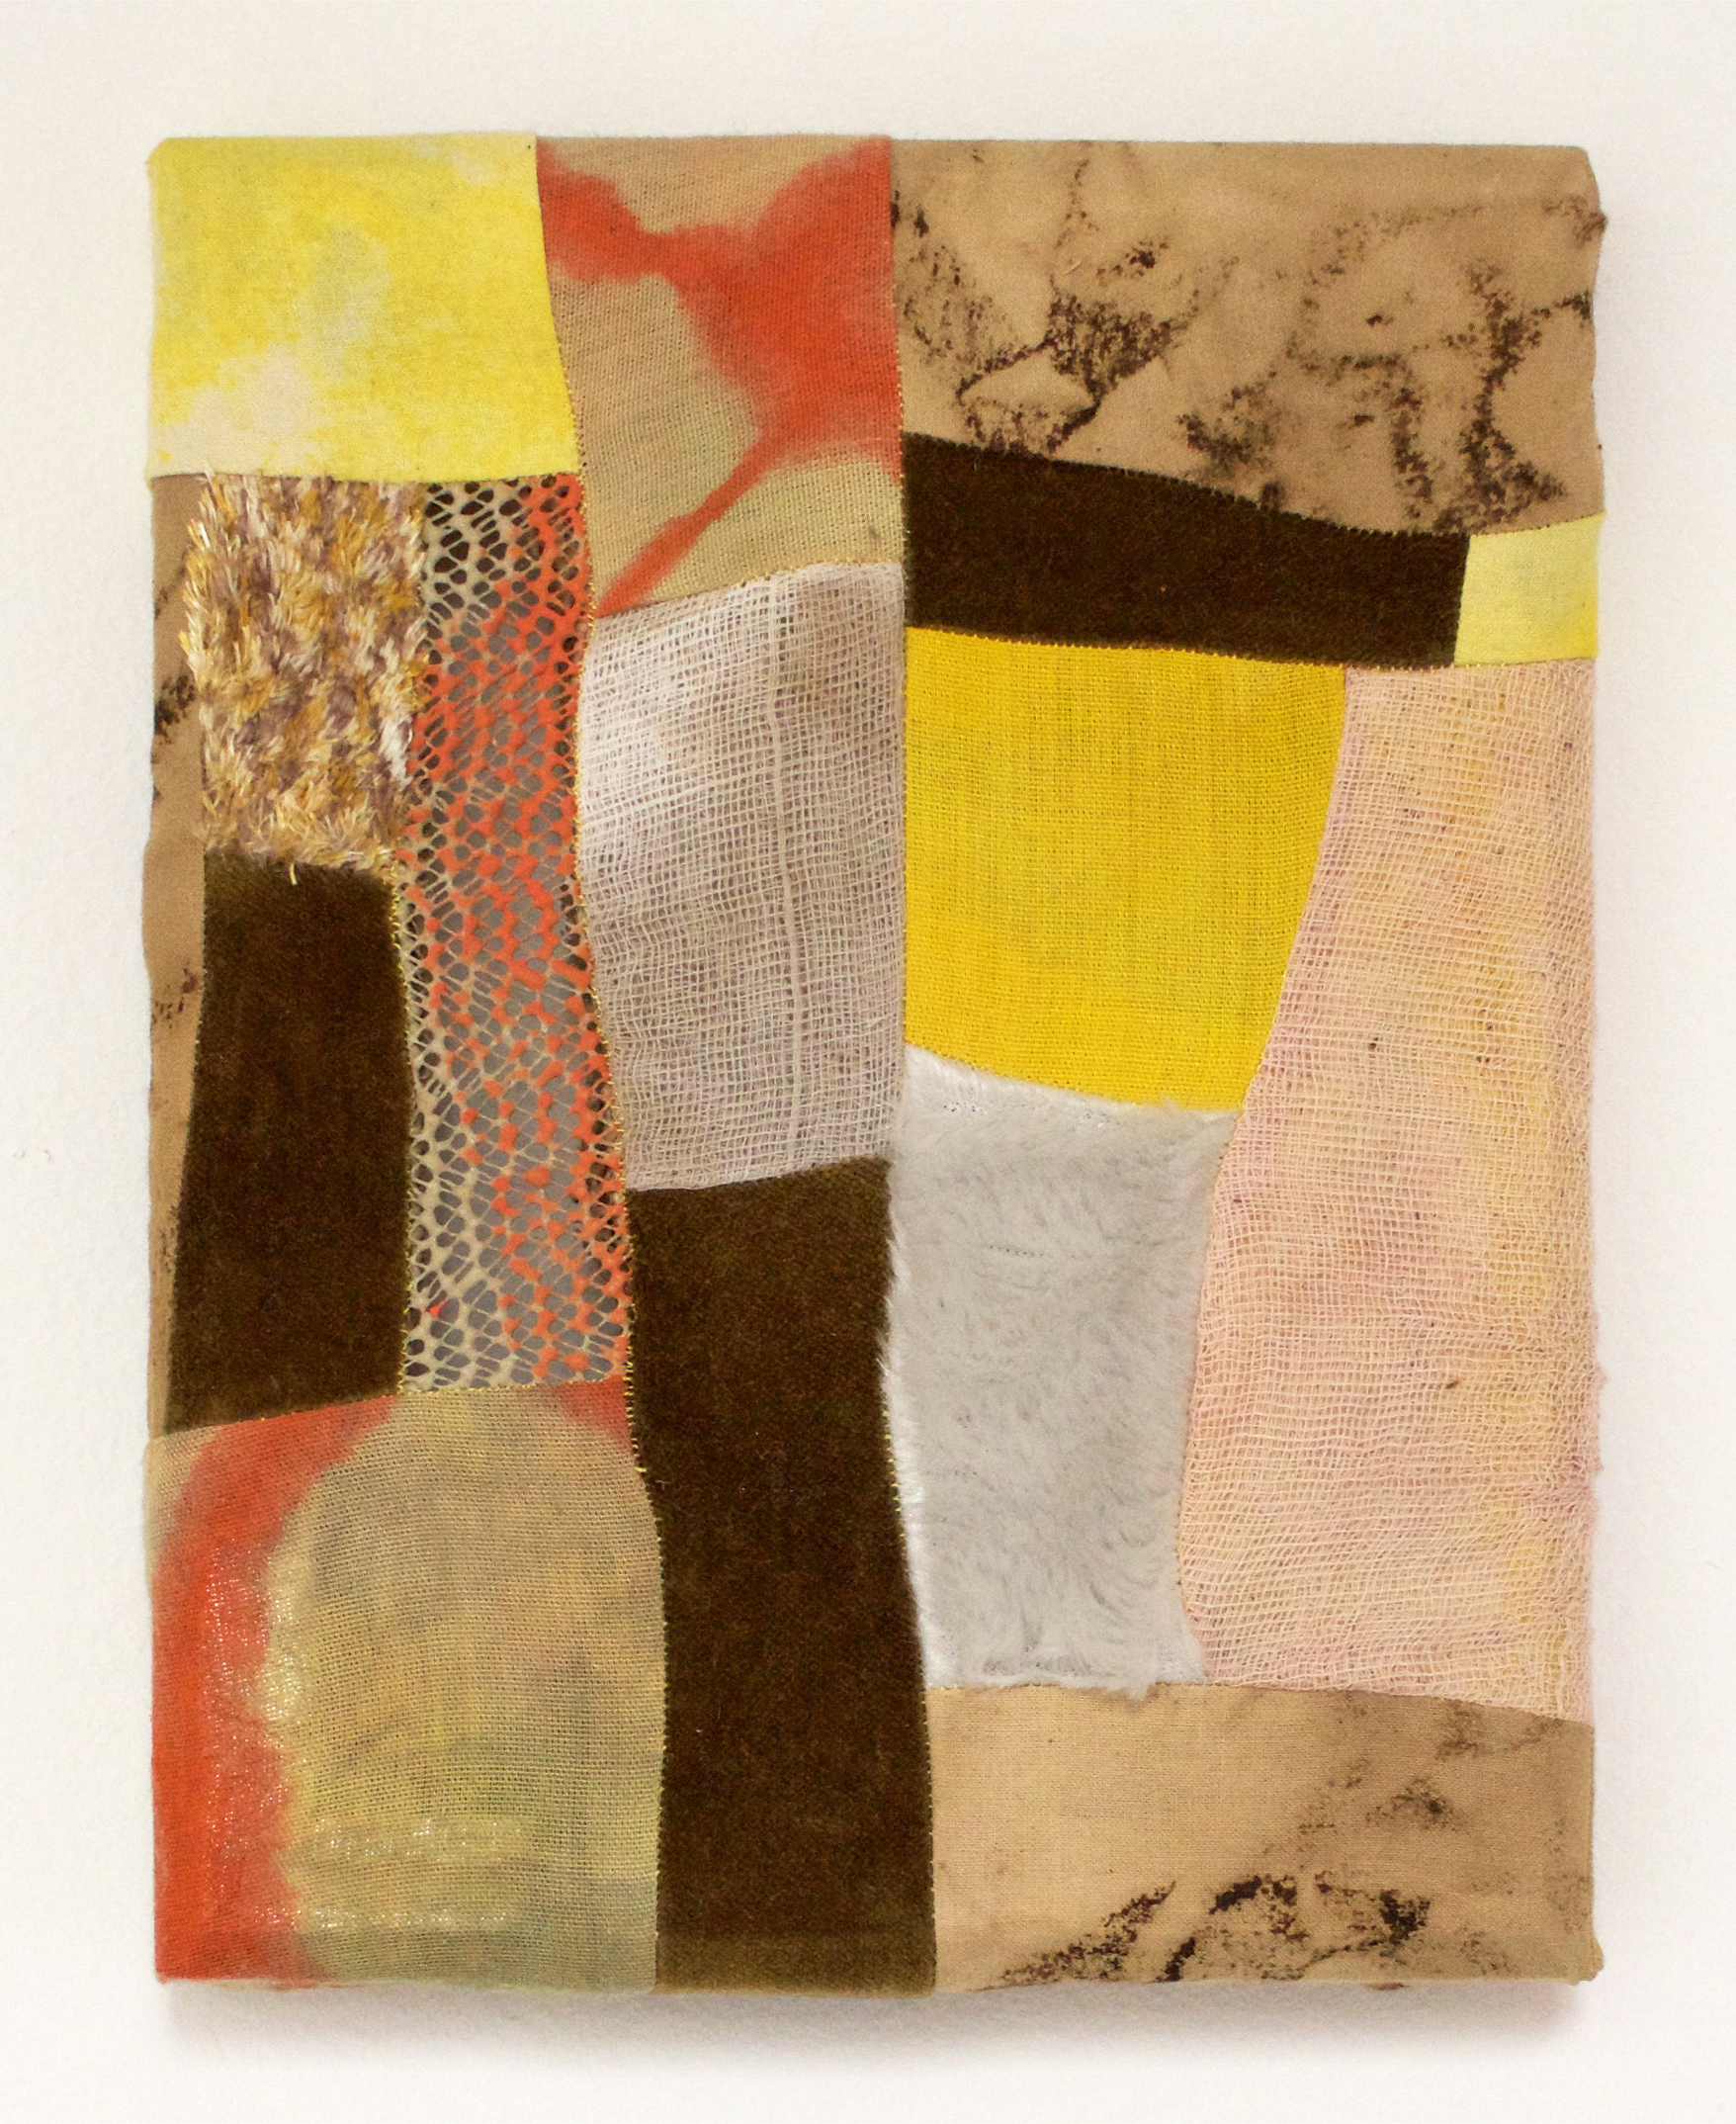 """In The Thicket   2017  Cotton fabric, turmeric, coffee, fabric dye, cotton gauze, velvet, faux fur, acrylic paint paint, rug mat  6.5"""" x 8"""""""